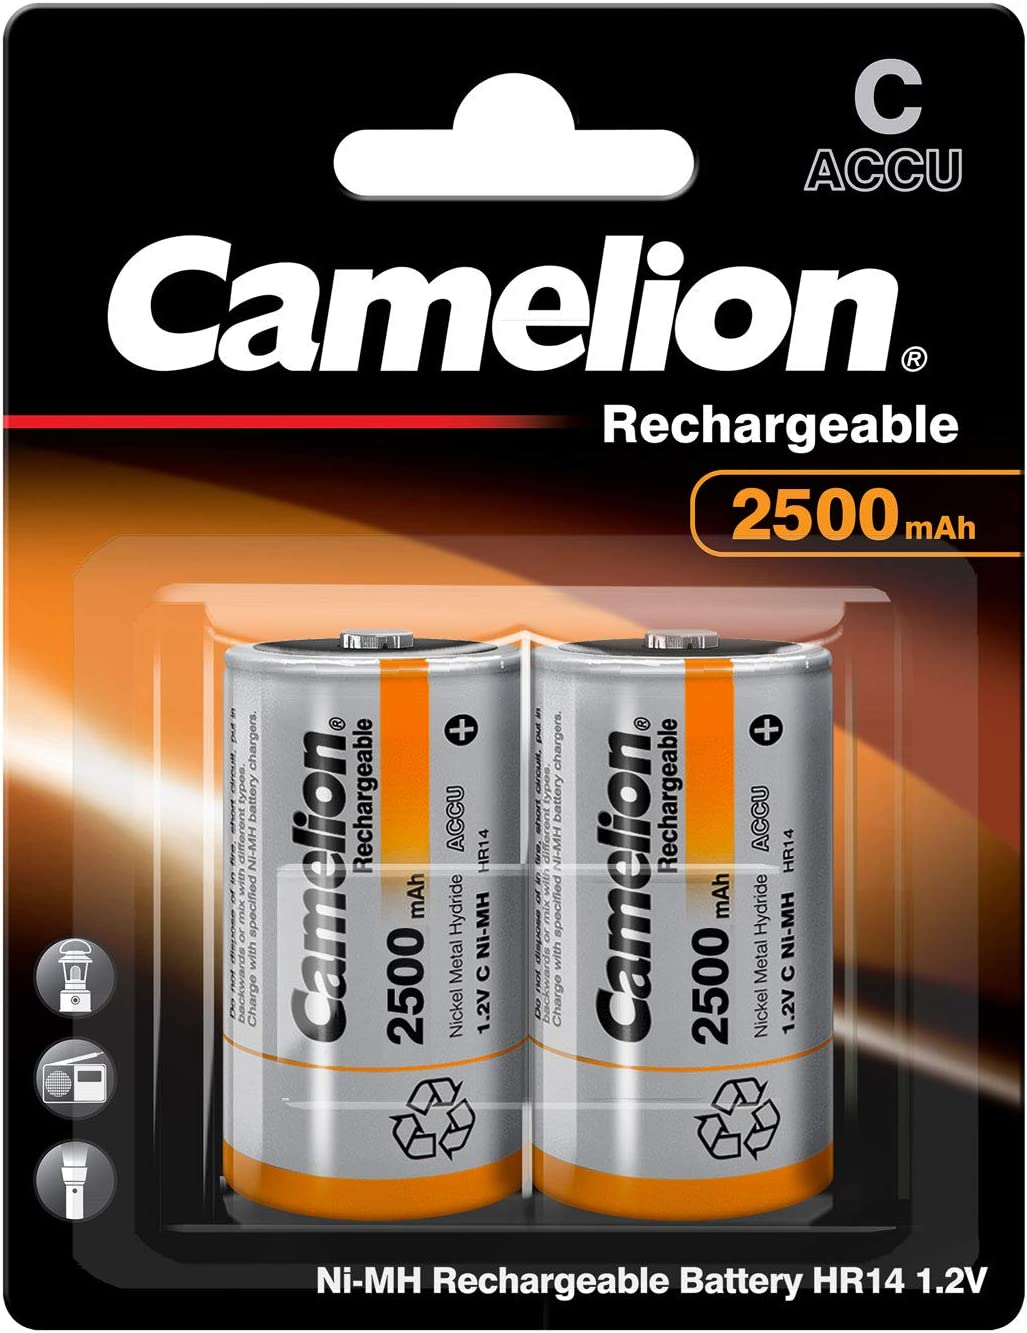 Camelion NH-9V250BP1 Rechargeable Battery Níquel-Metal hidruro ...